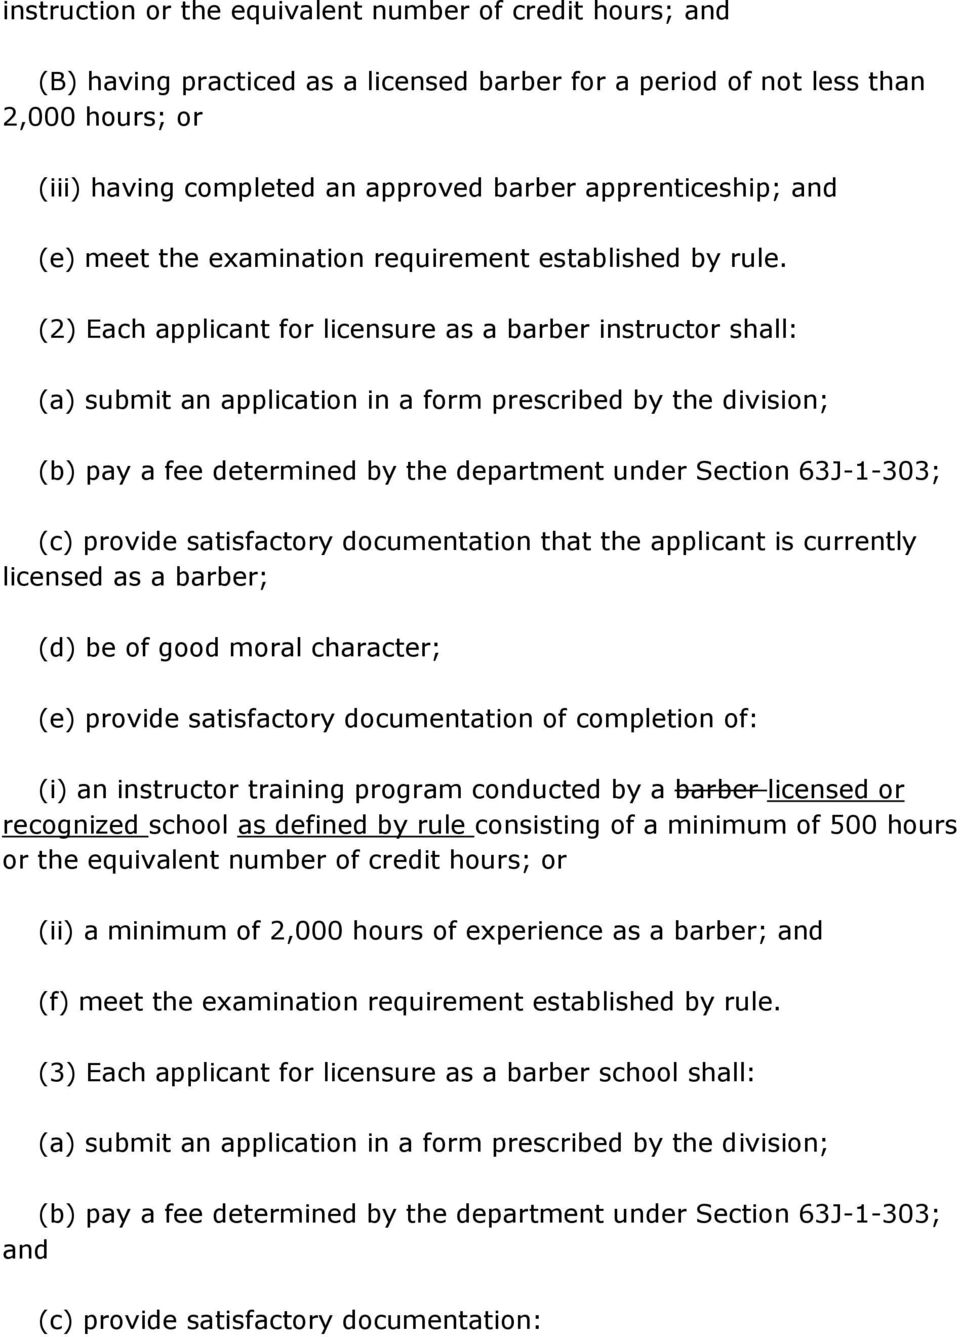 (2) Each applicant for licensure as a barber instructor shall: (c) provide satisfactory documentation that the applicant is currently licensed as a barber; (d) be of good moral character; (e) provide